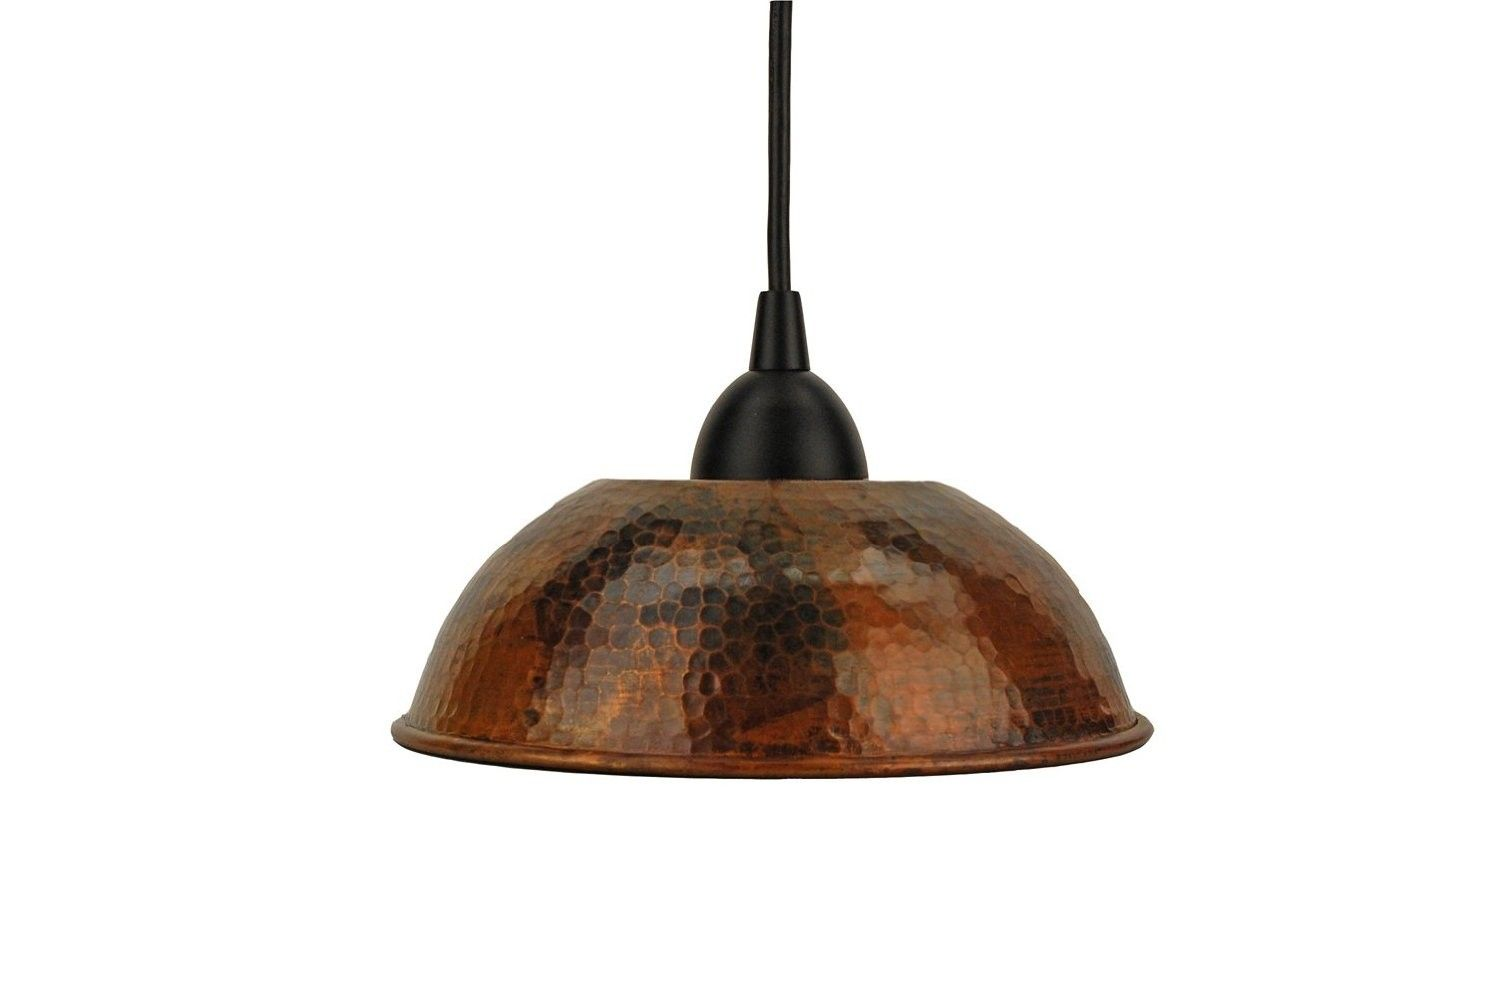 premier copper products l200db 8 1 2 inch hand hammered copper dome